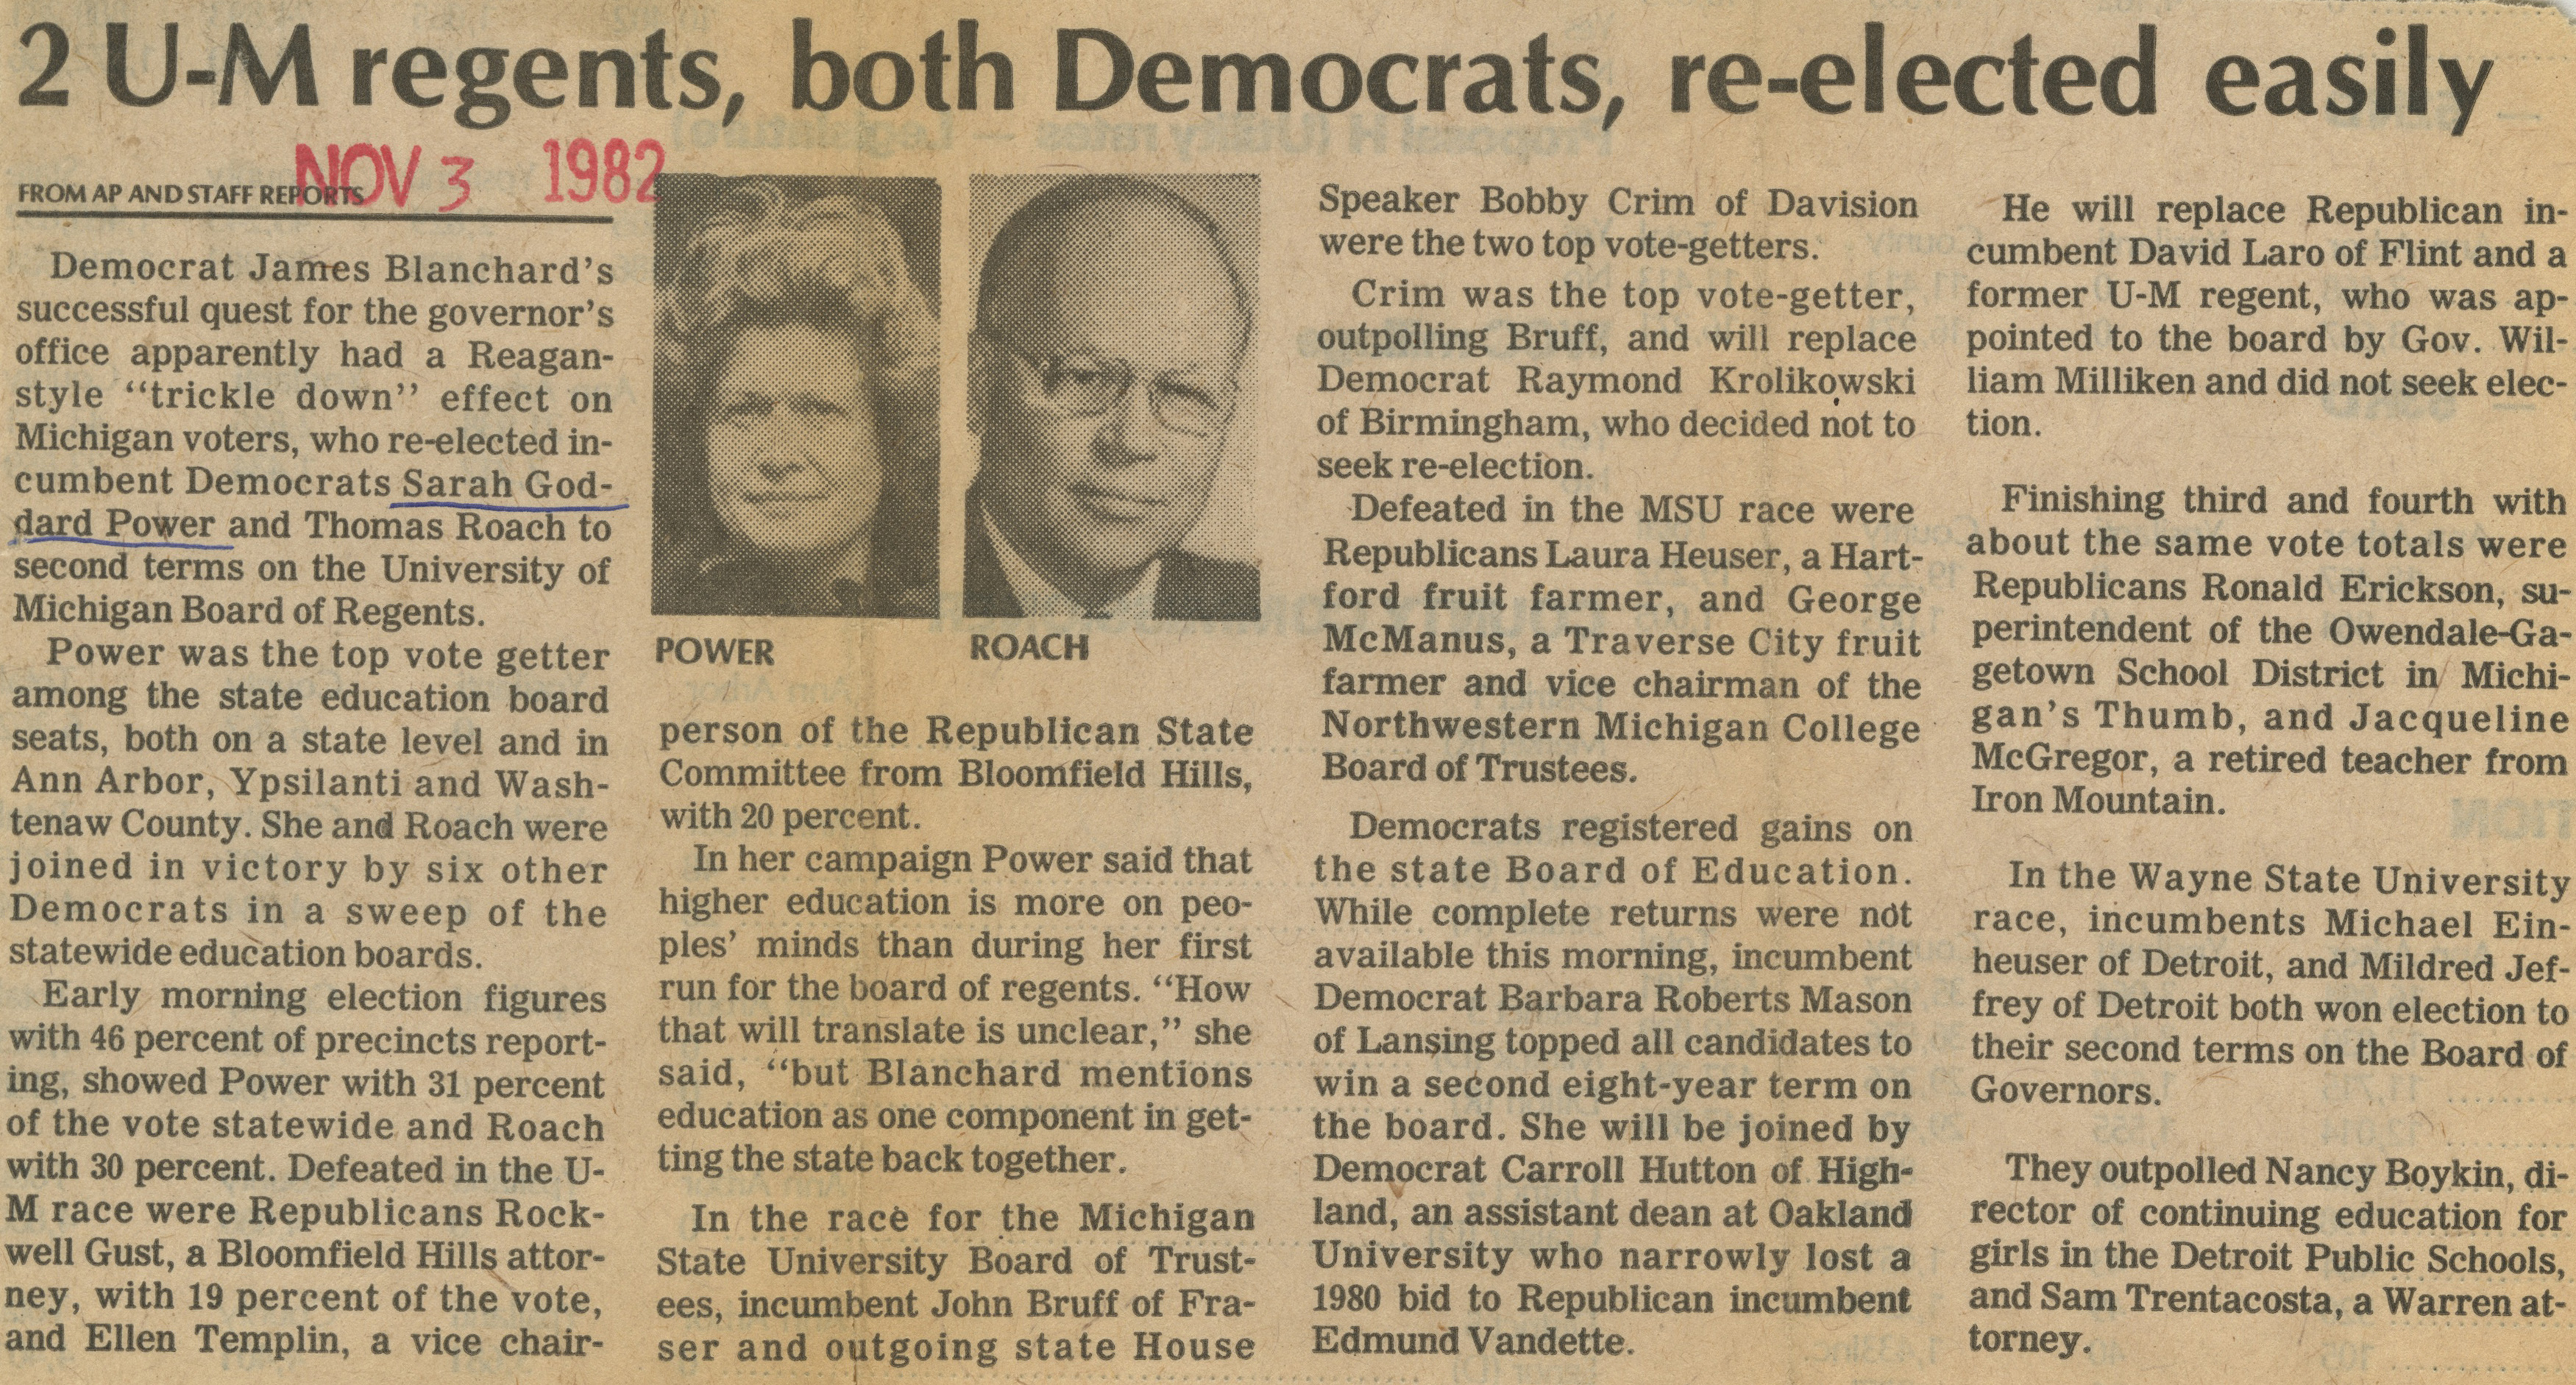 2 U-M Regents, Both Democrats, Re-Elected Easily image